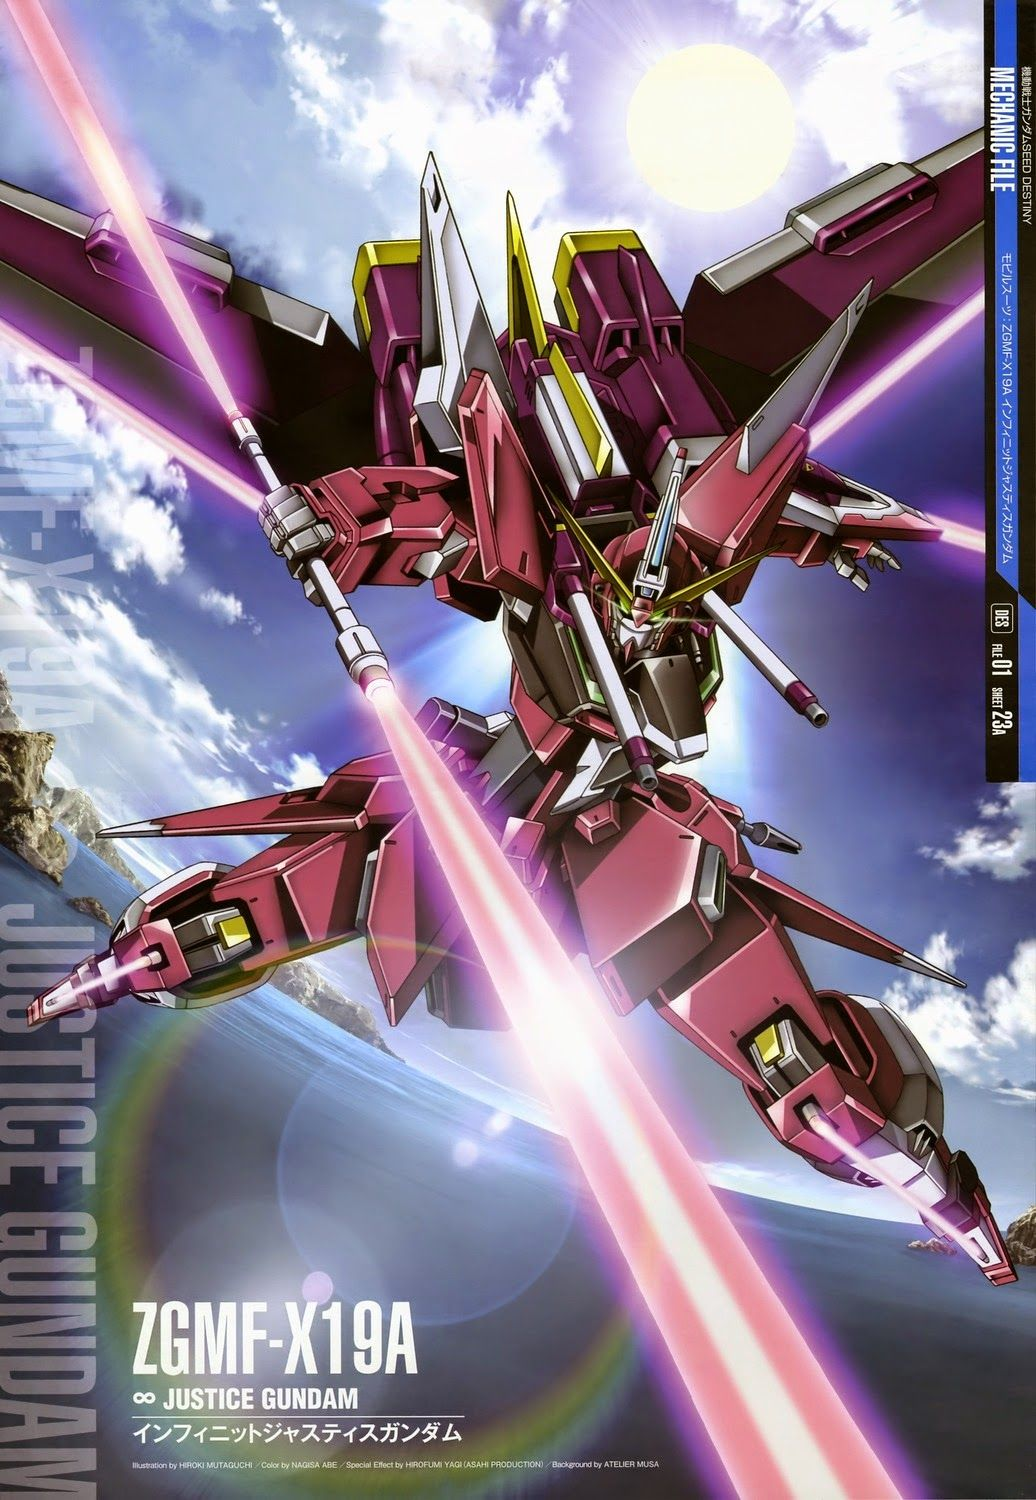 Mobile Suit Gundam Mechanic File High Quality Image Gallery Part 17 Gundam Gundam Wallpapers Gundam Seed